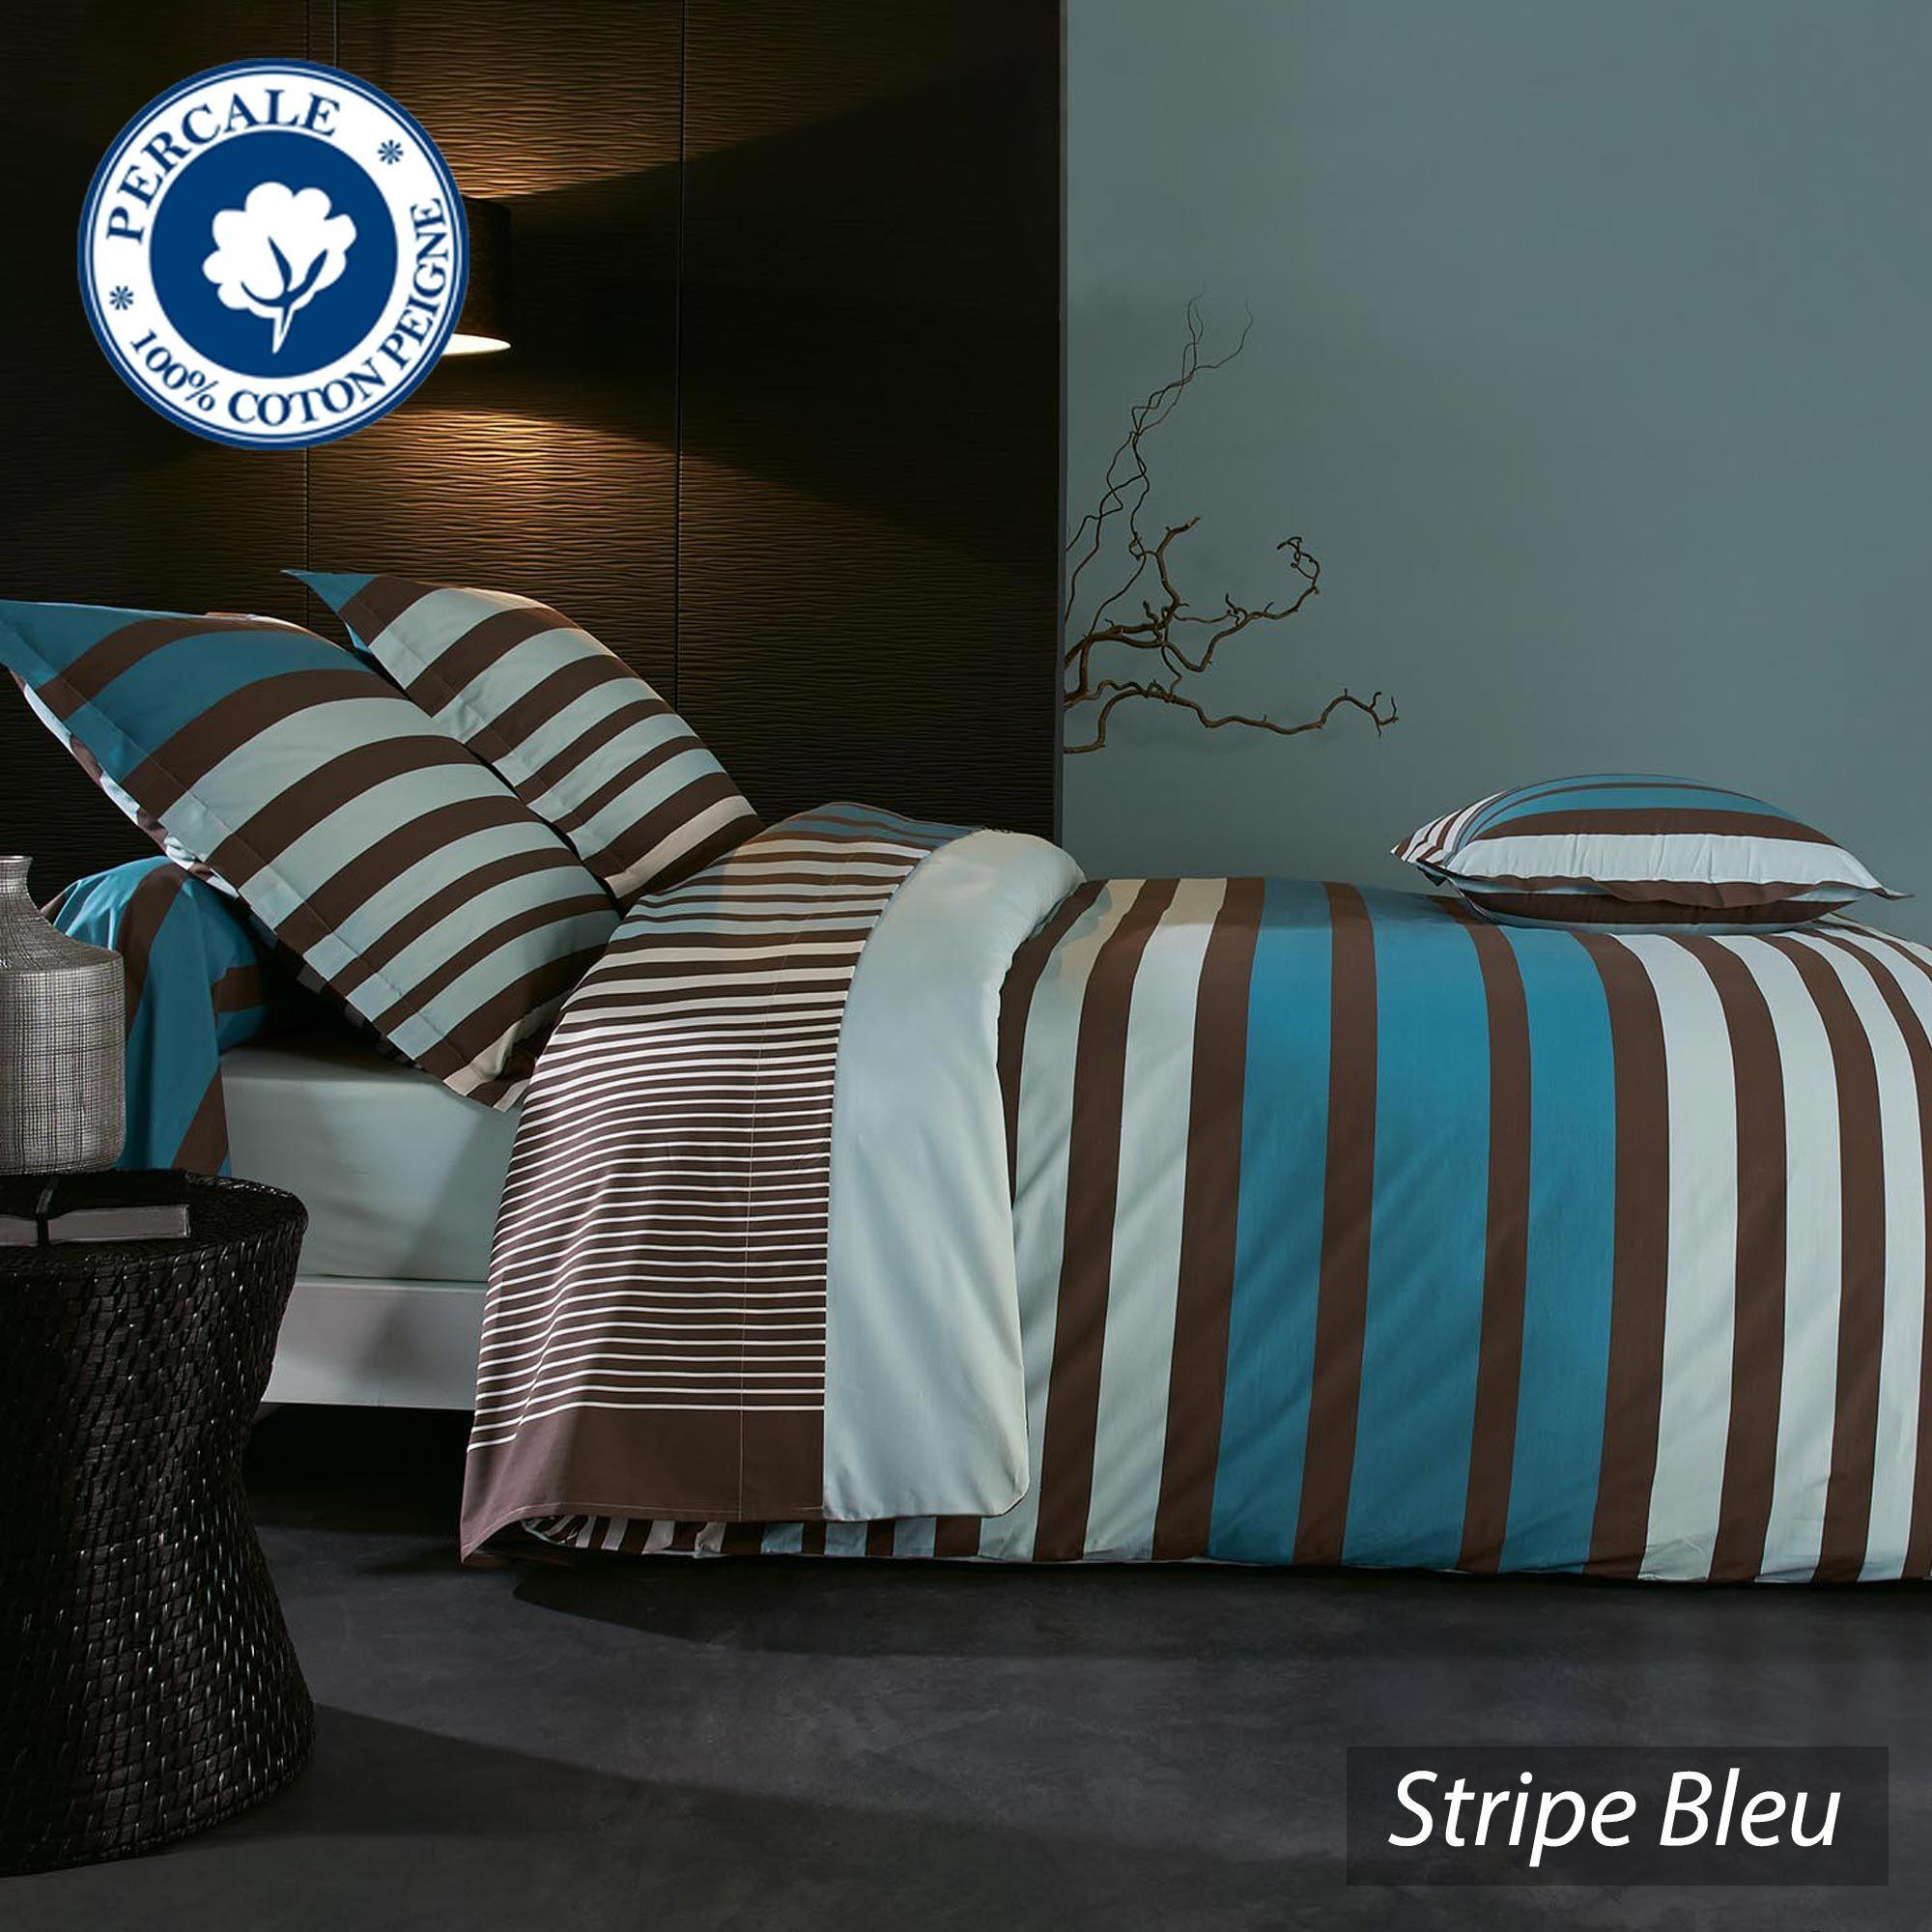 housse de couette percale pur coton peign 260x240 cm stripe bleu linnea vente de linge de maison. Black Bedroom Furniture Sets. Home Design Ideas